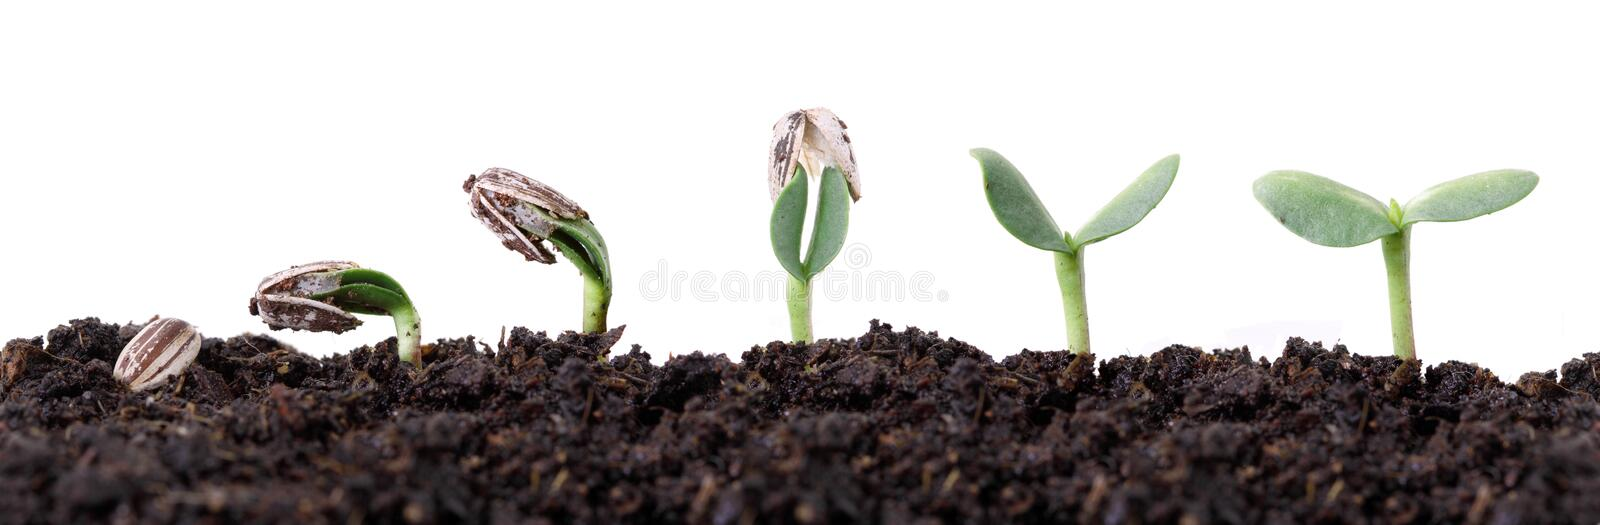 Download Sunflower Seed Germination Different Stages Royalty Free Stock Images - Image: 14766469